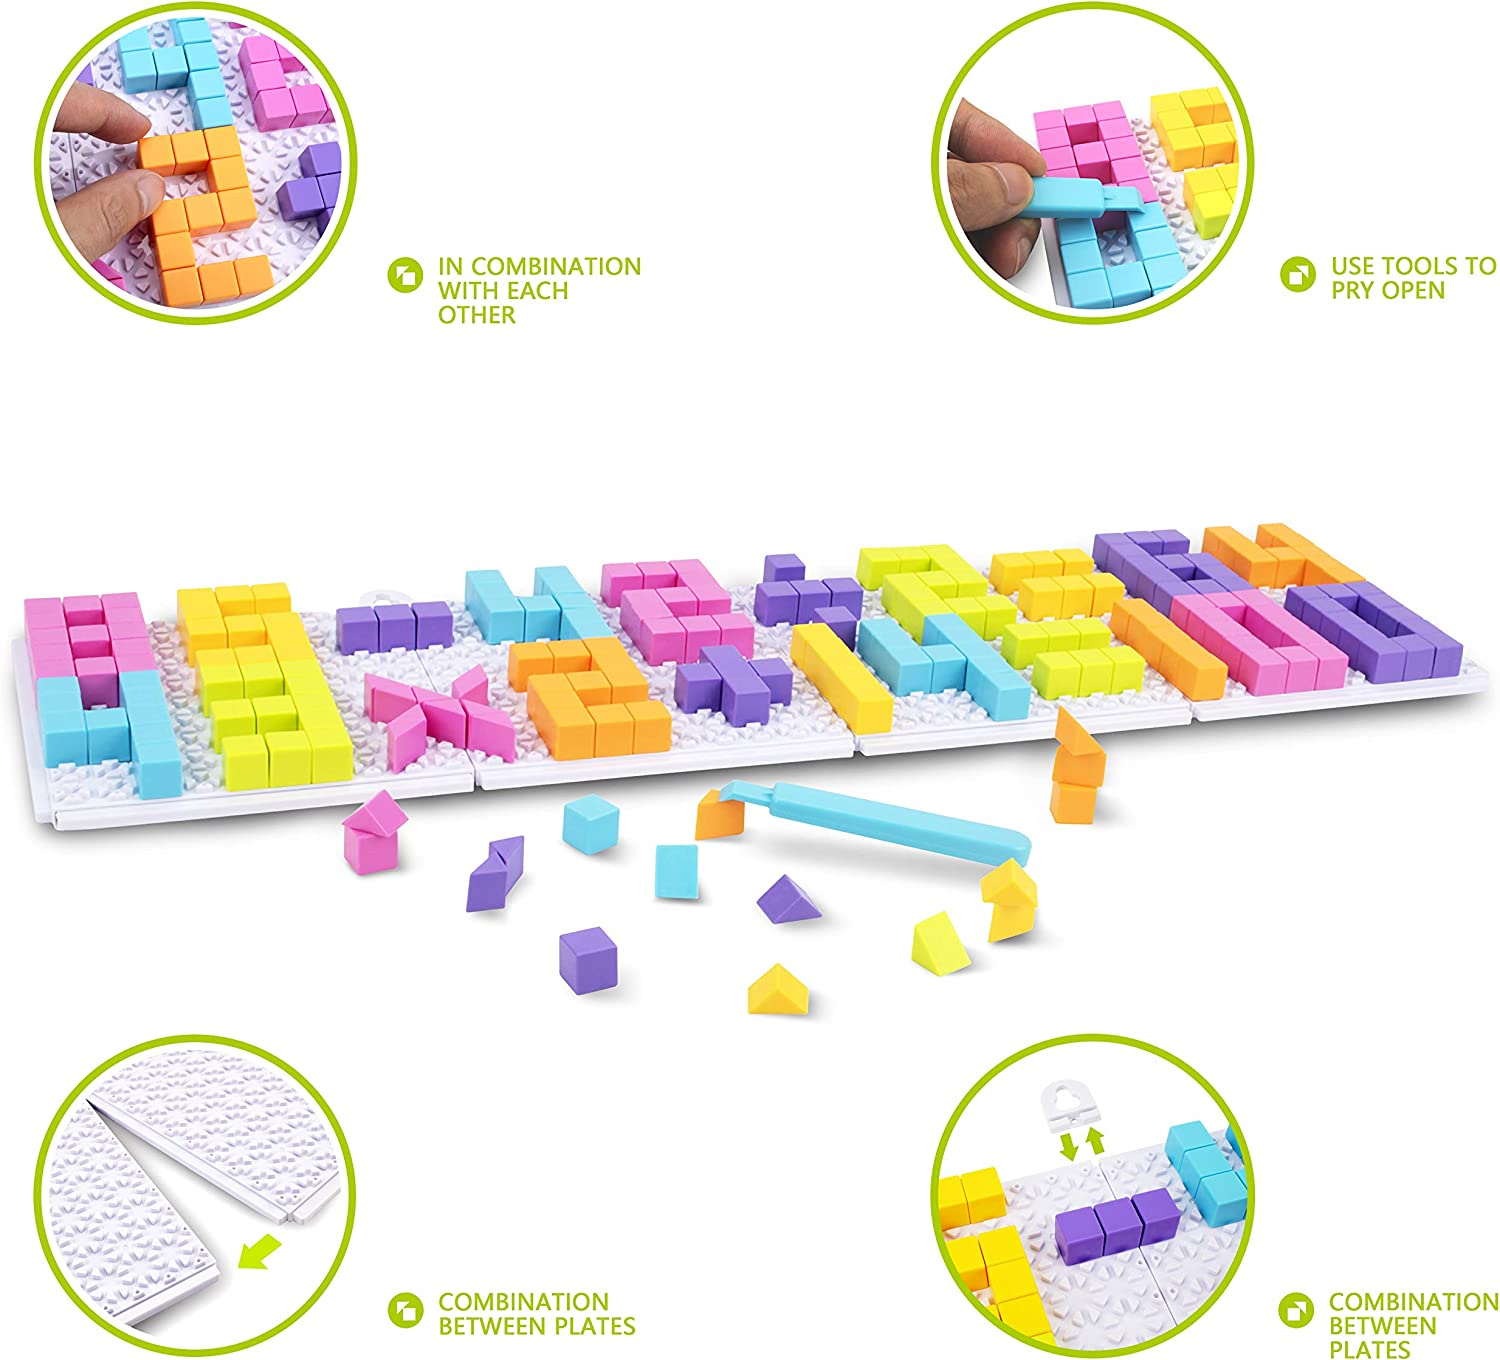 Puzzlers for Kids UNIH Plus Plus Building Toys and Educational Letters and Numbers for Toddlers 1,2,3,4 Years Old Girls and Boys 420pcs